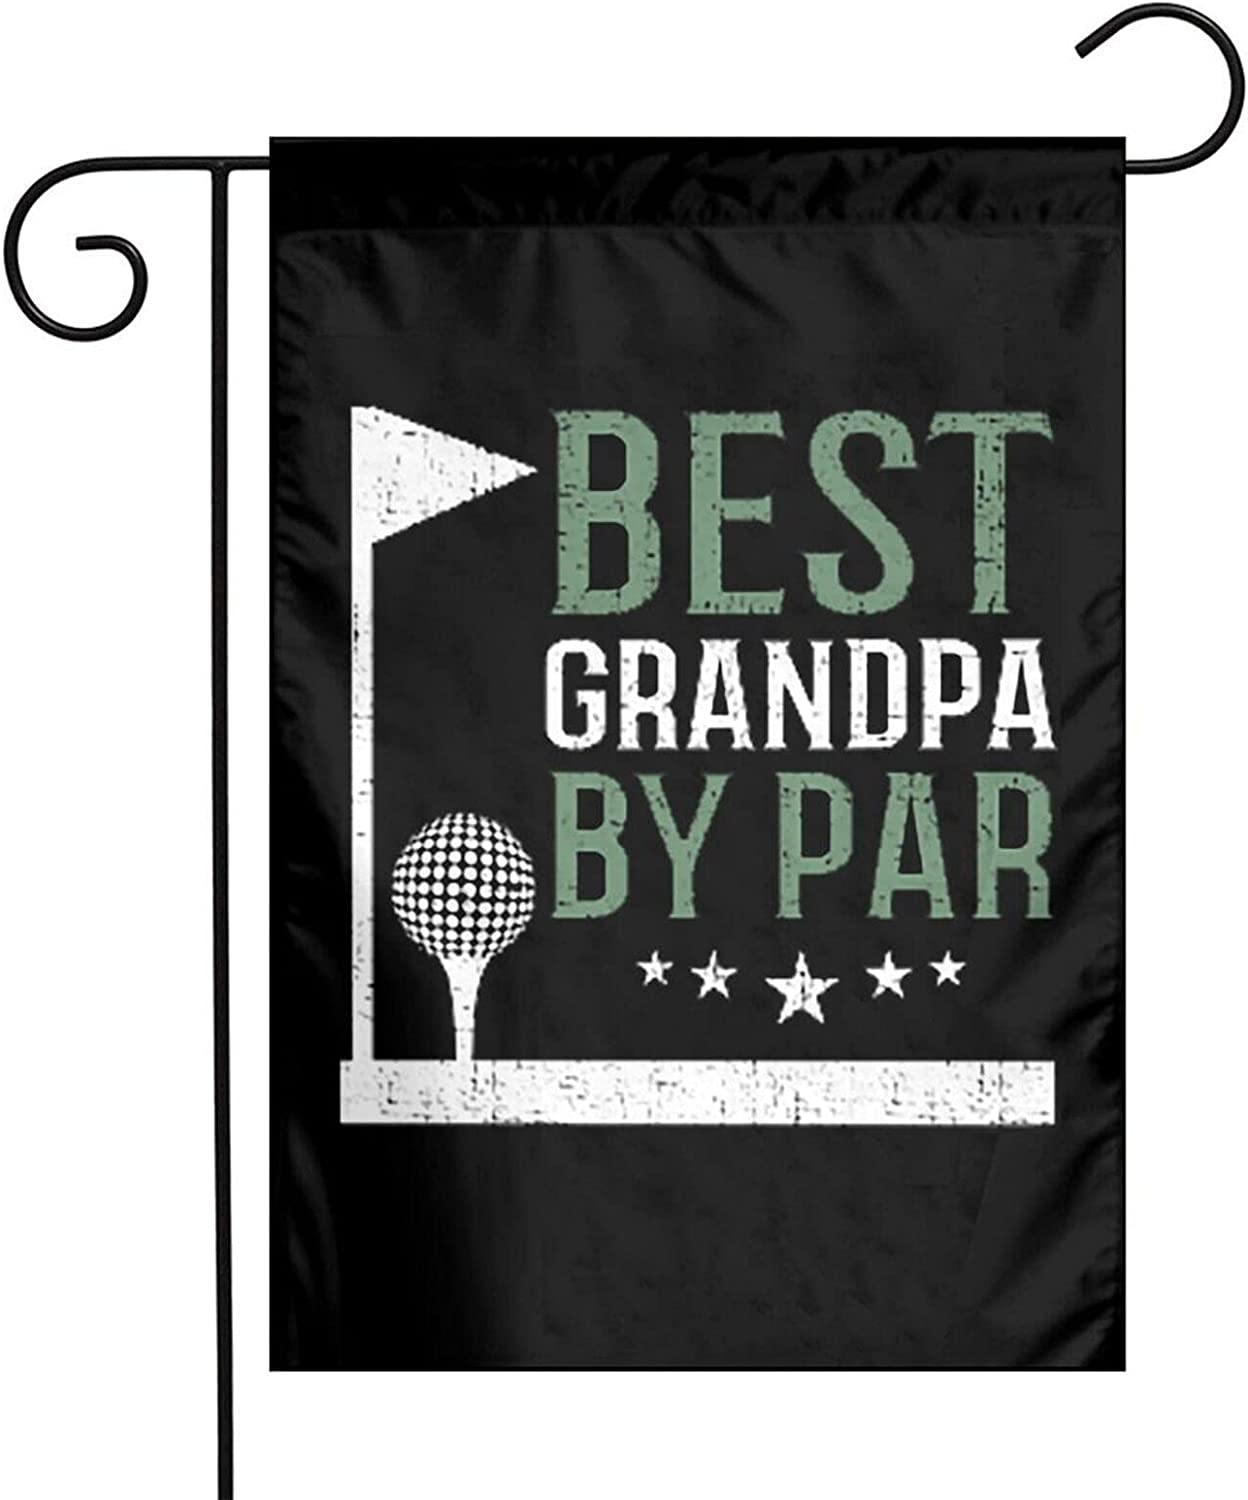 Leumius Best Grandpa by Par Golf Lover Fathers Day Funny Grandpa Garden Flag,Double Sided Yard Flag, Outdoor Indoor Patio Home Decor 12x18 Inch